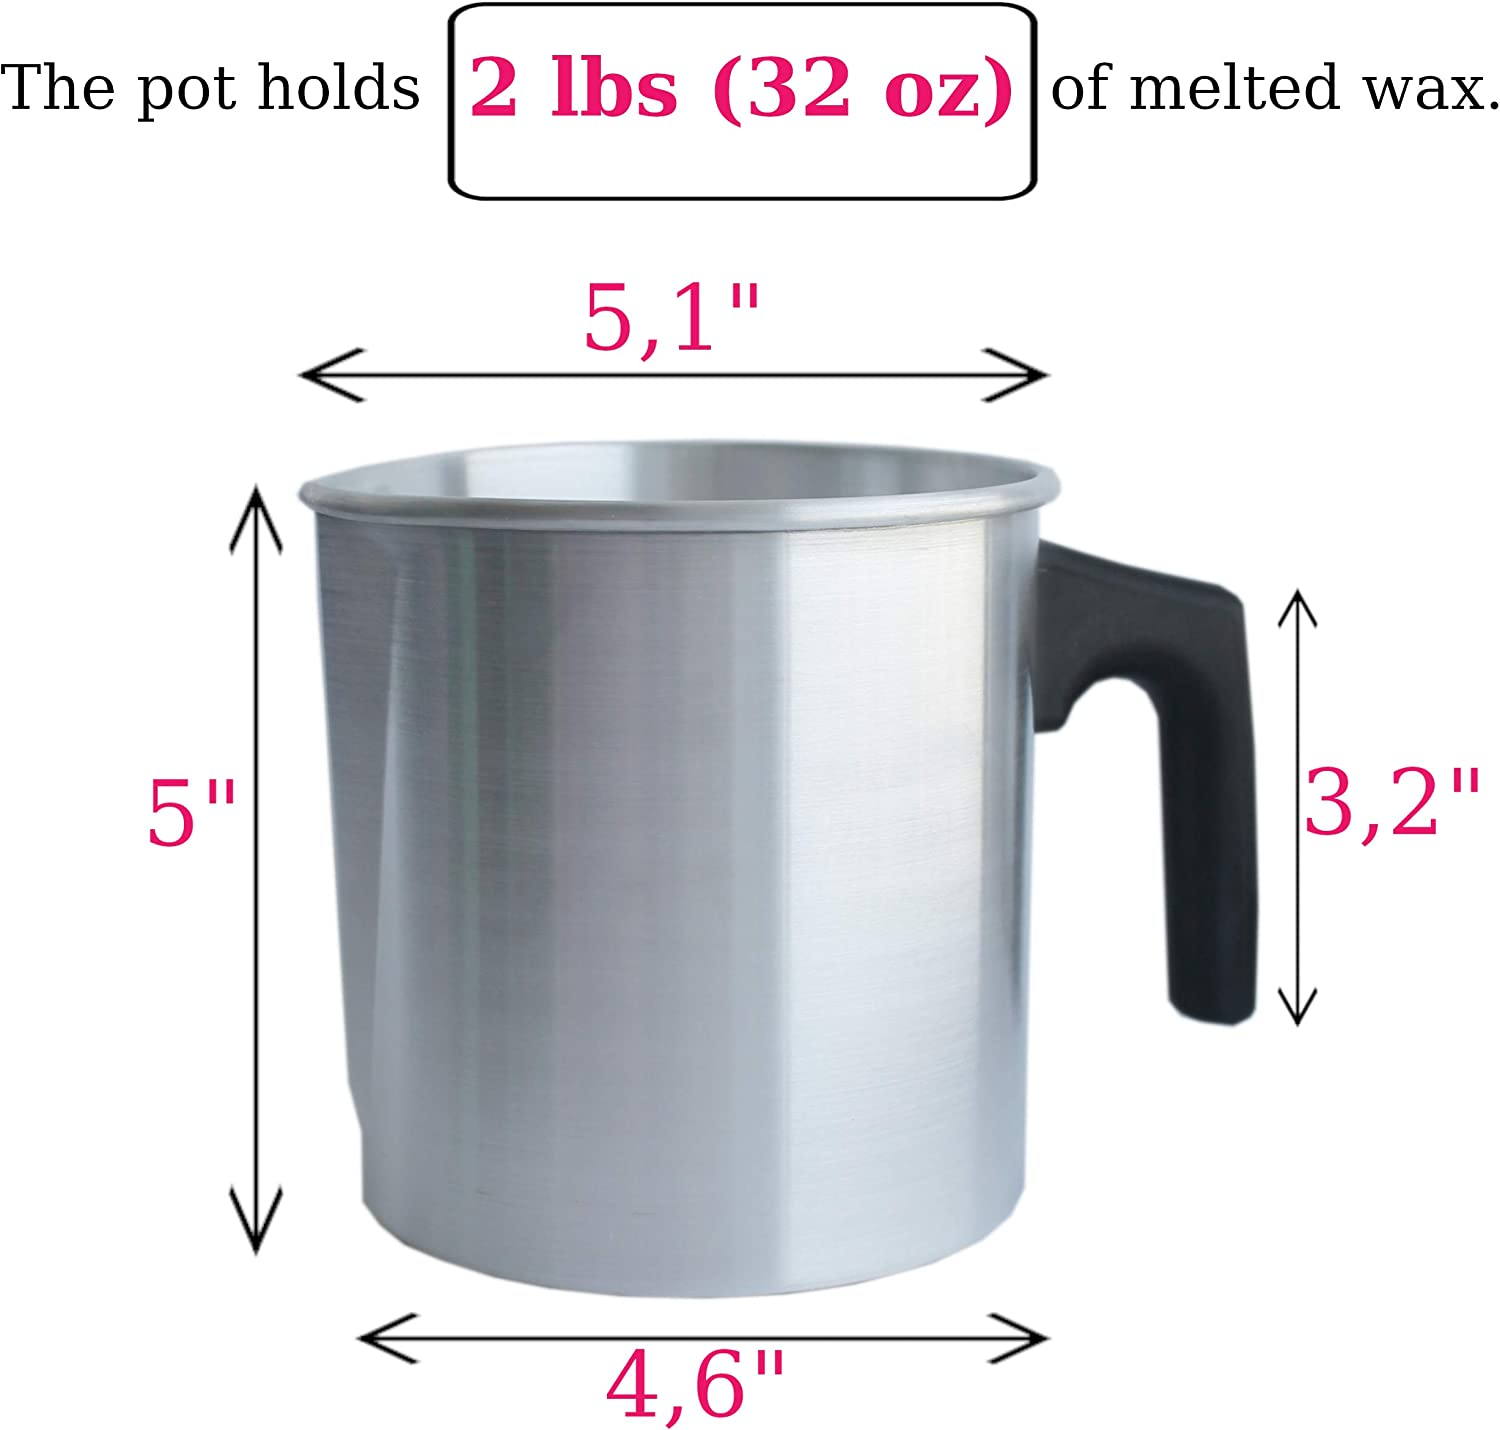 Candle Wax Melting and Pouring Pot-MINI 1-1//2 lb size